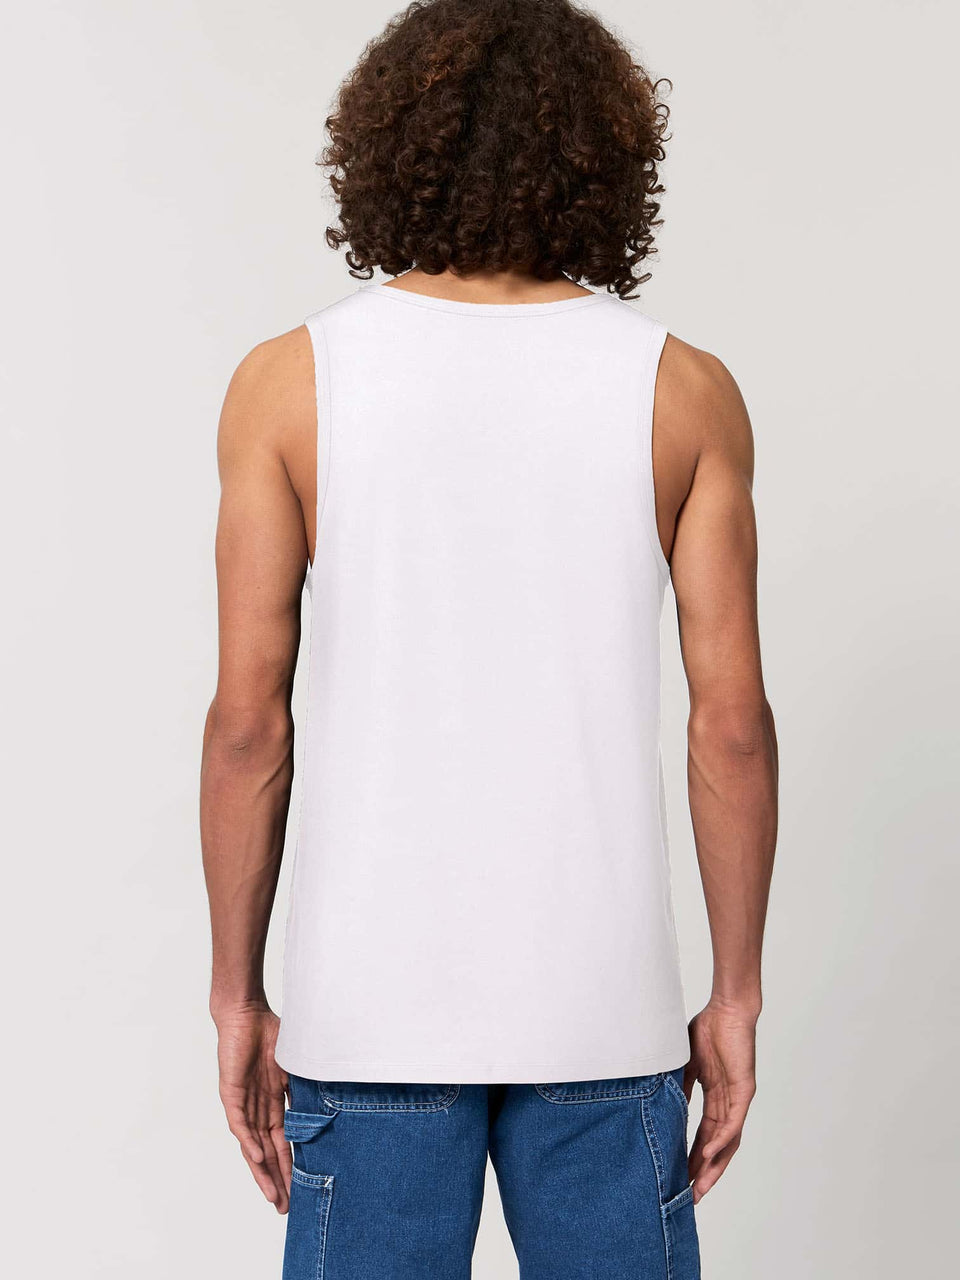 Butterfly Morph Made To Order Men Tank Top - White